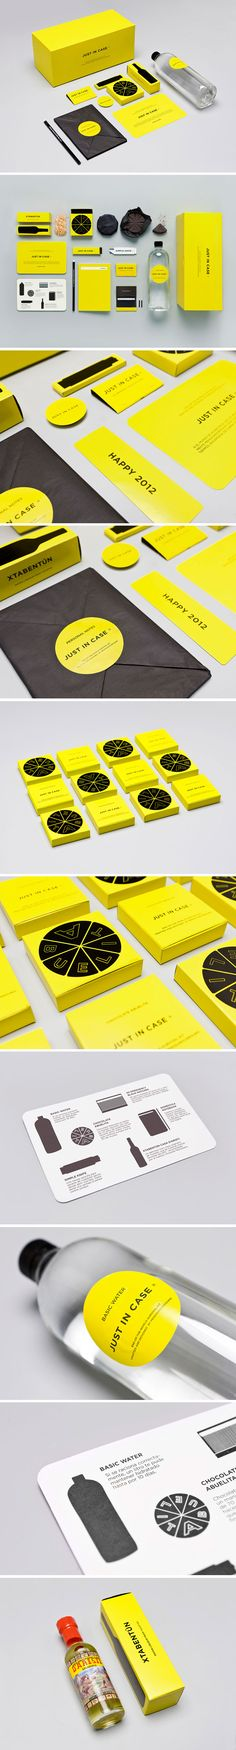 Just in case by MENOSUNOCEROUNO #packaging #branding #marketing PD